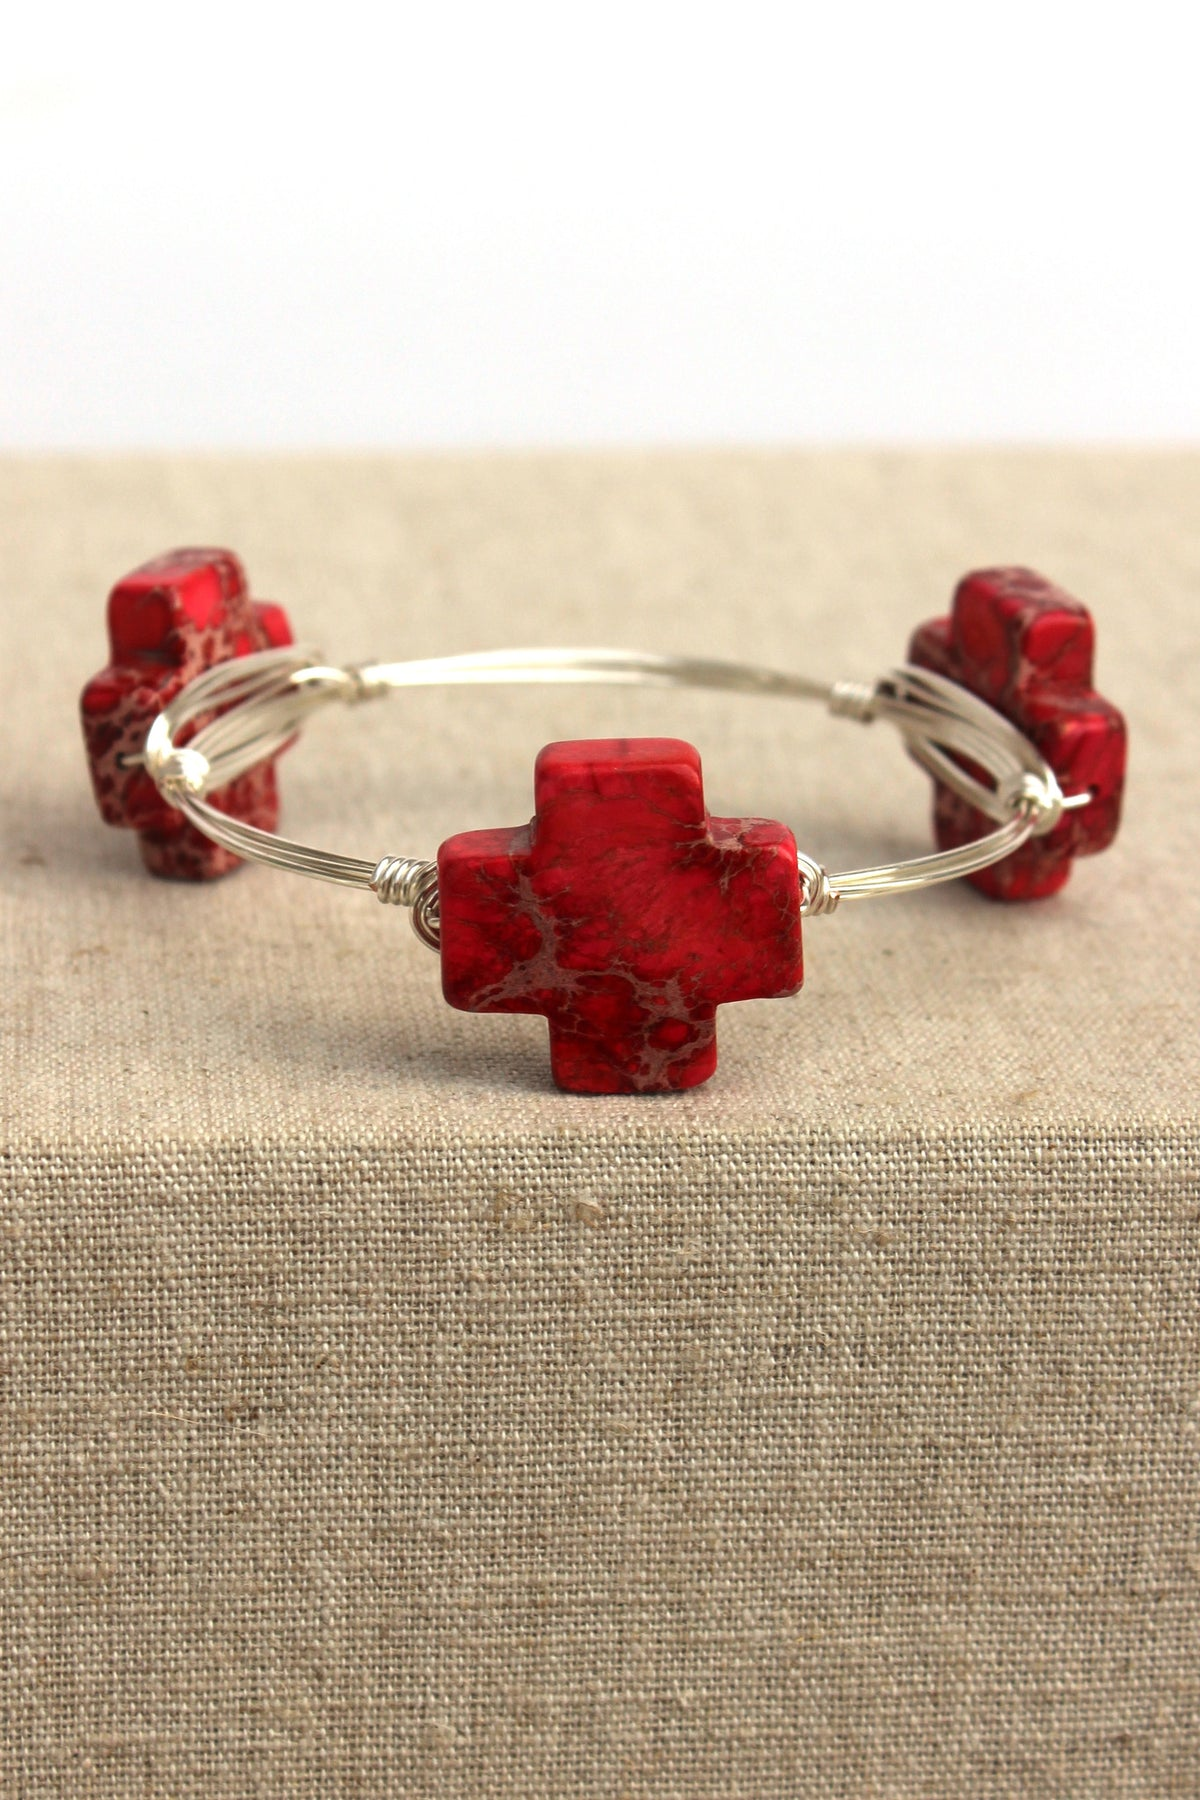 Square Cross Bangle, Red